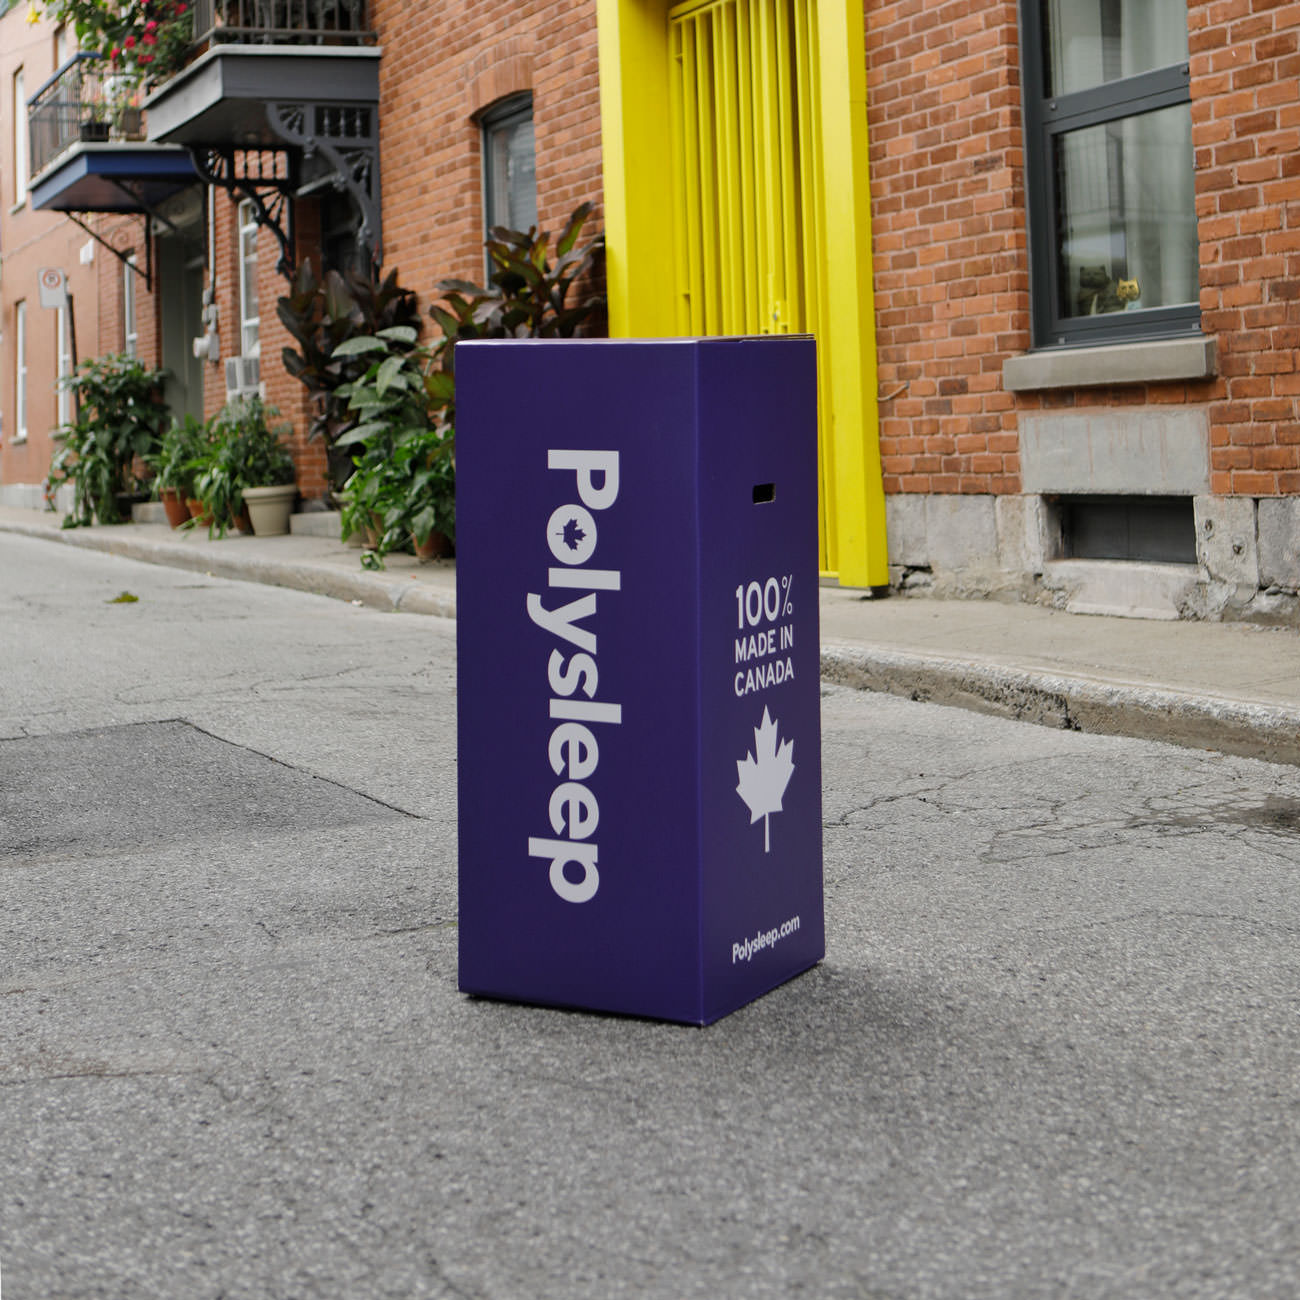 The Polysleep foam mattress delivered to your doorstep in Toronto